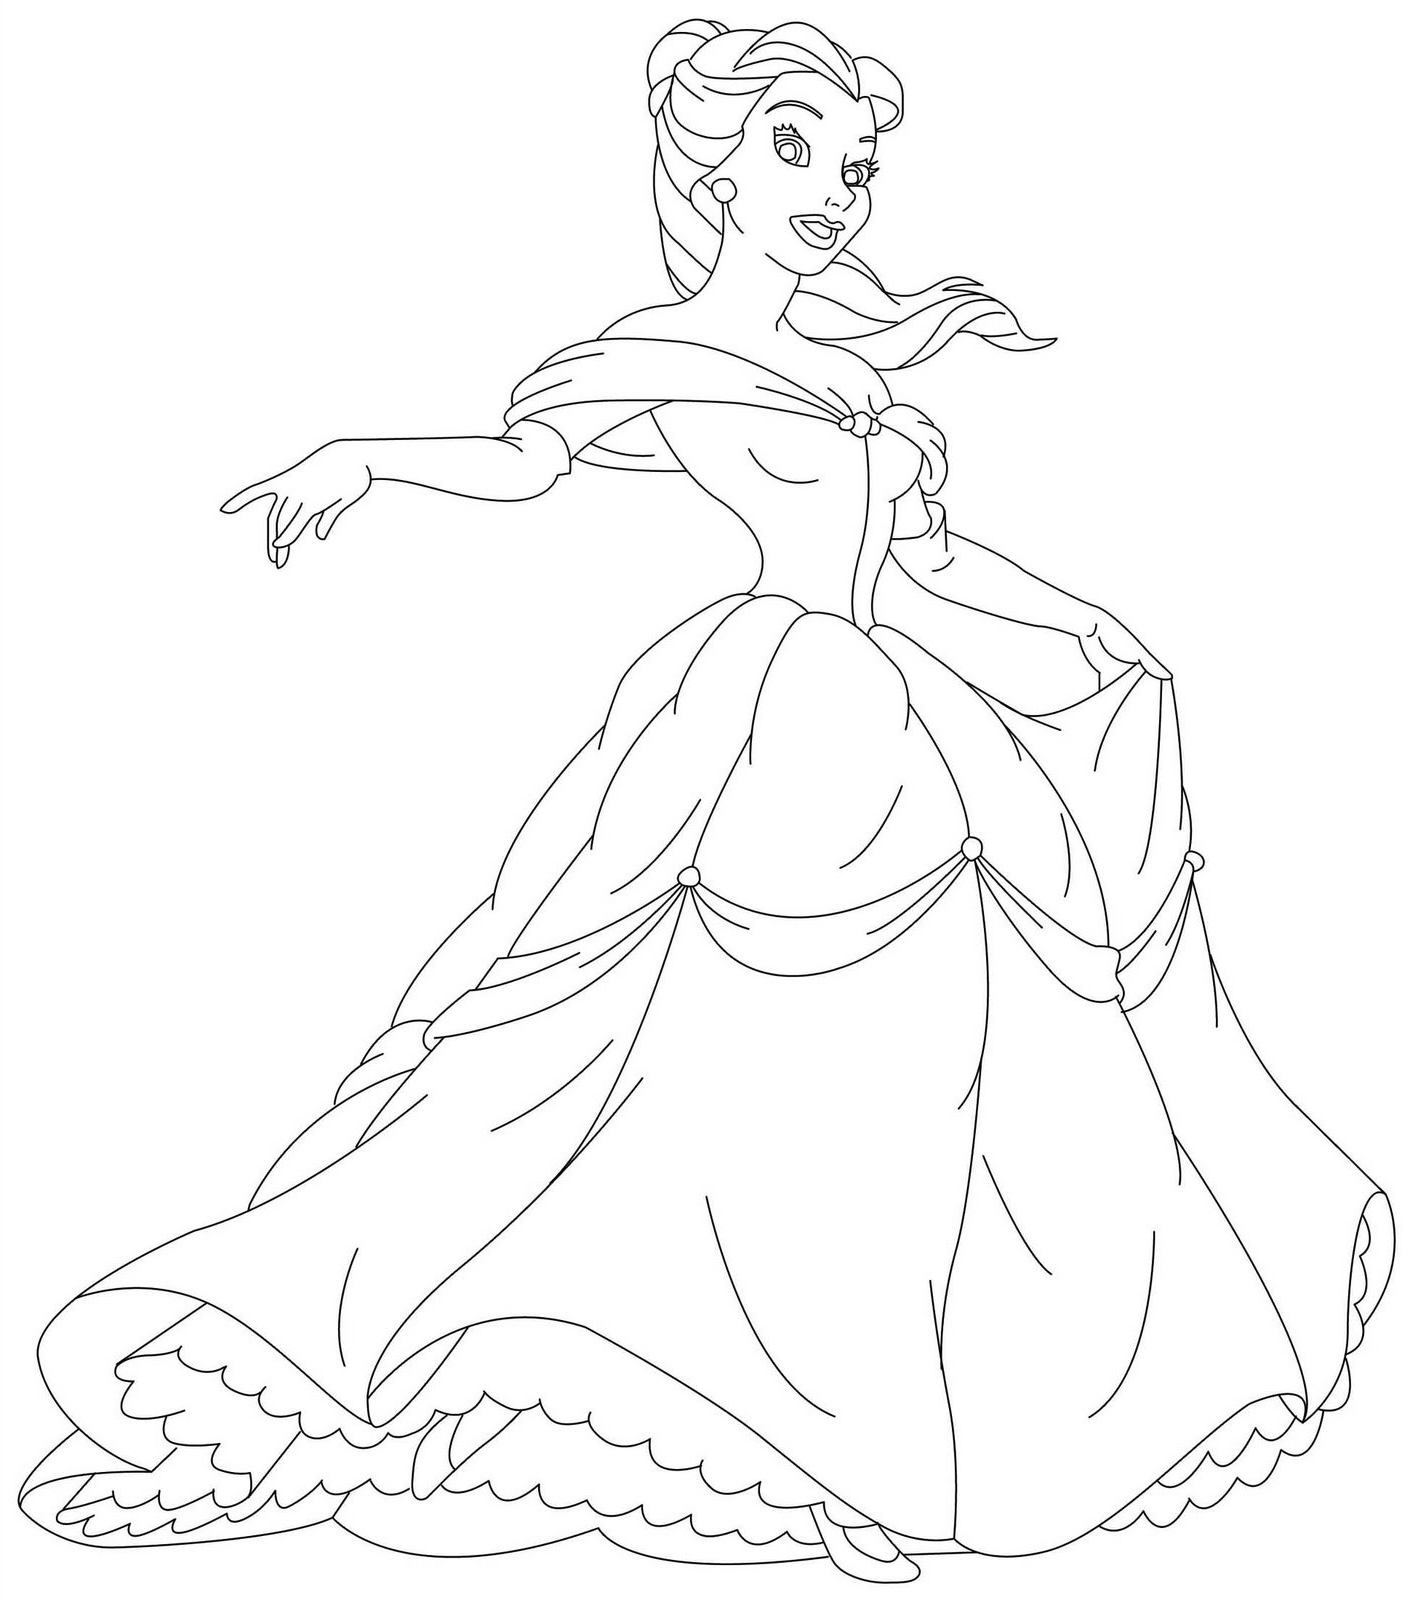 coloring book pages disney princesses - photo#26